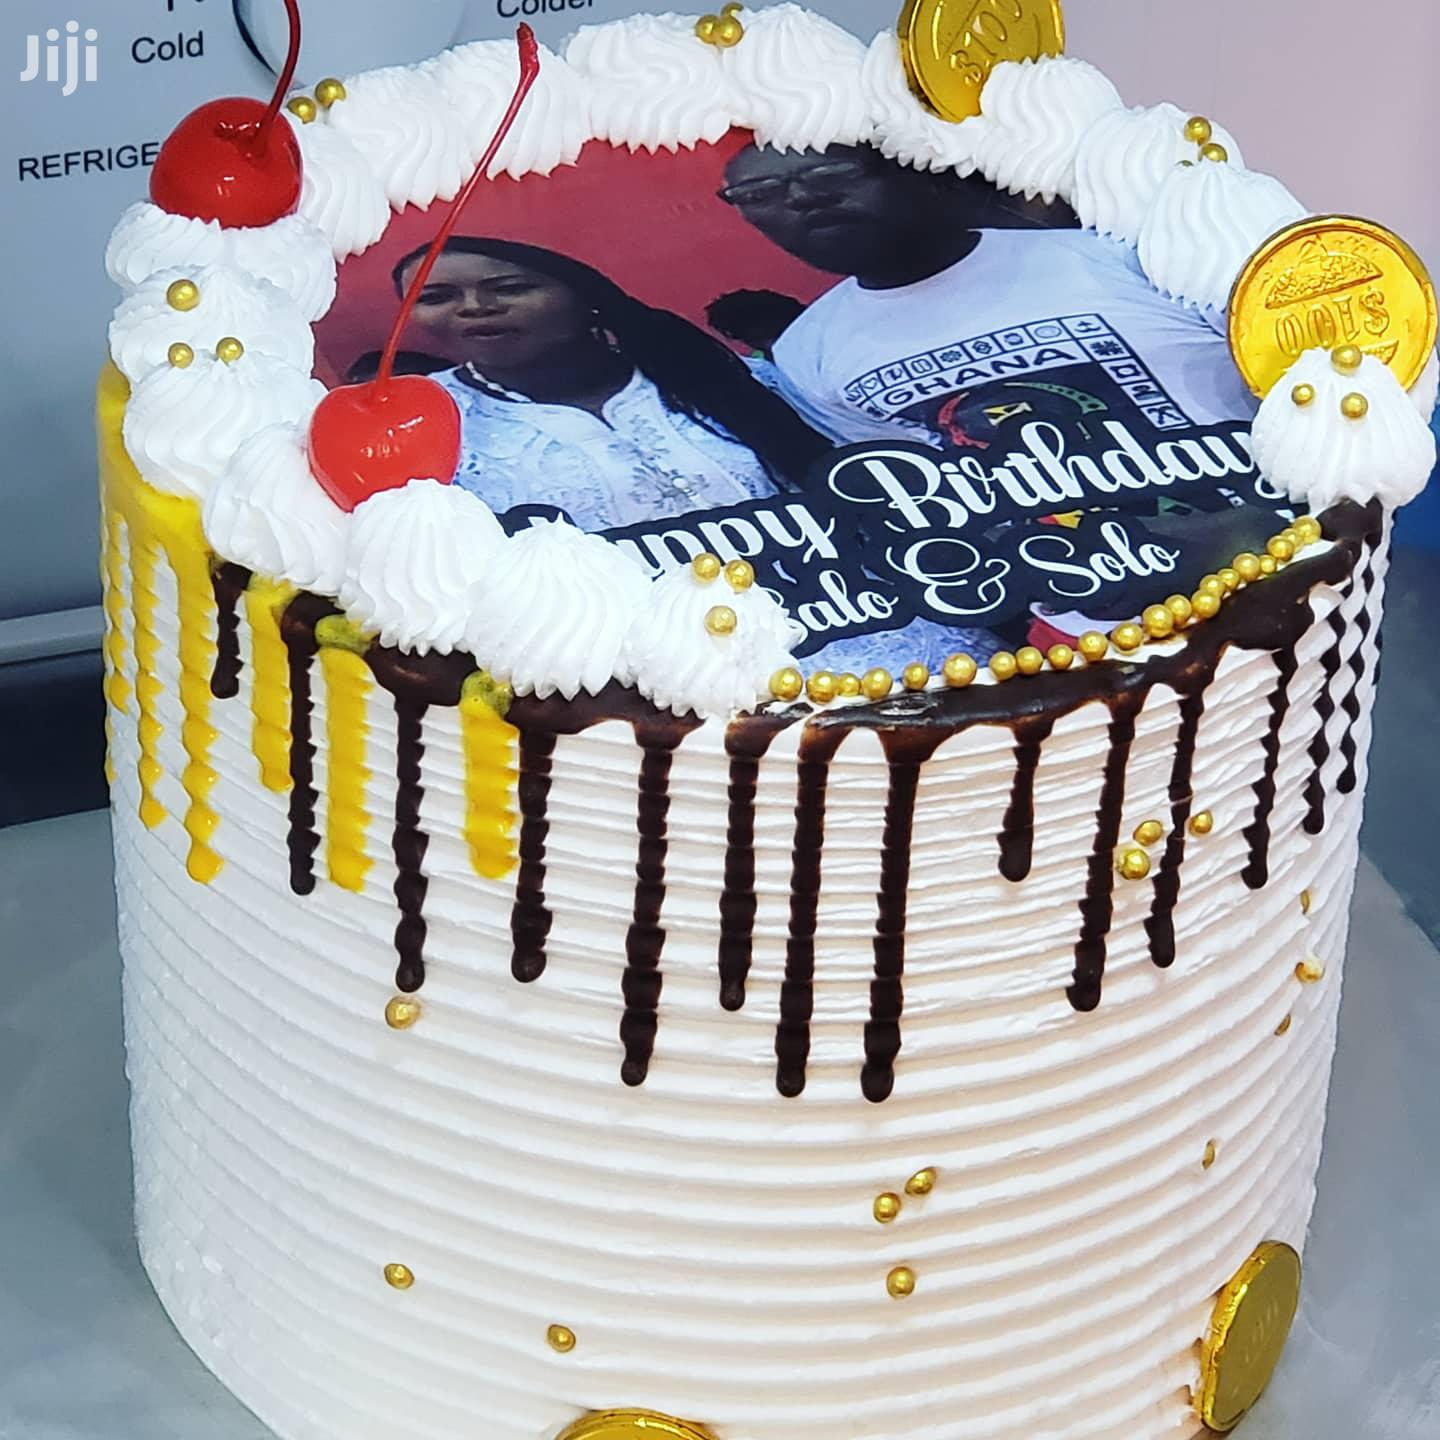 Cakes Birthdays, Weddings | Party, Catering & Event Services for sale in Achimota, Greater Accra, Ghana